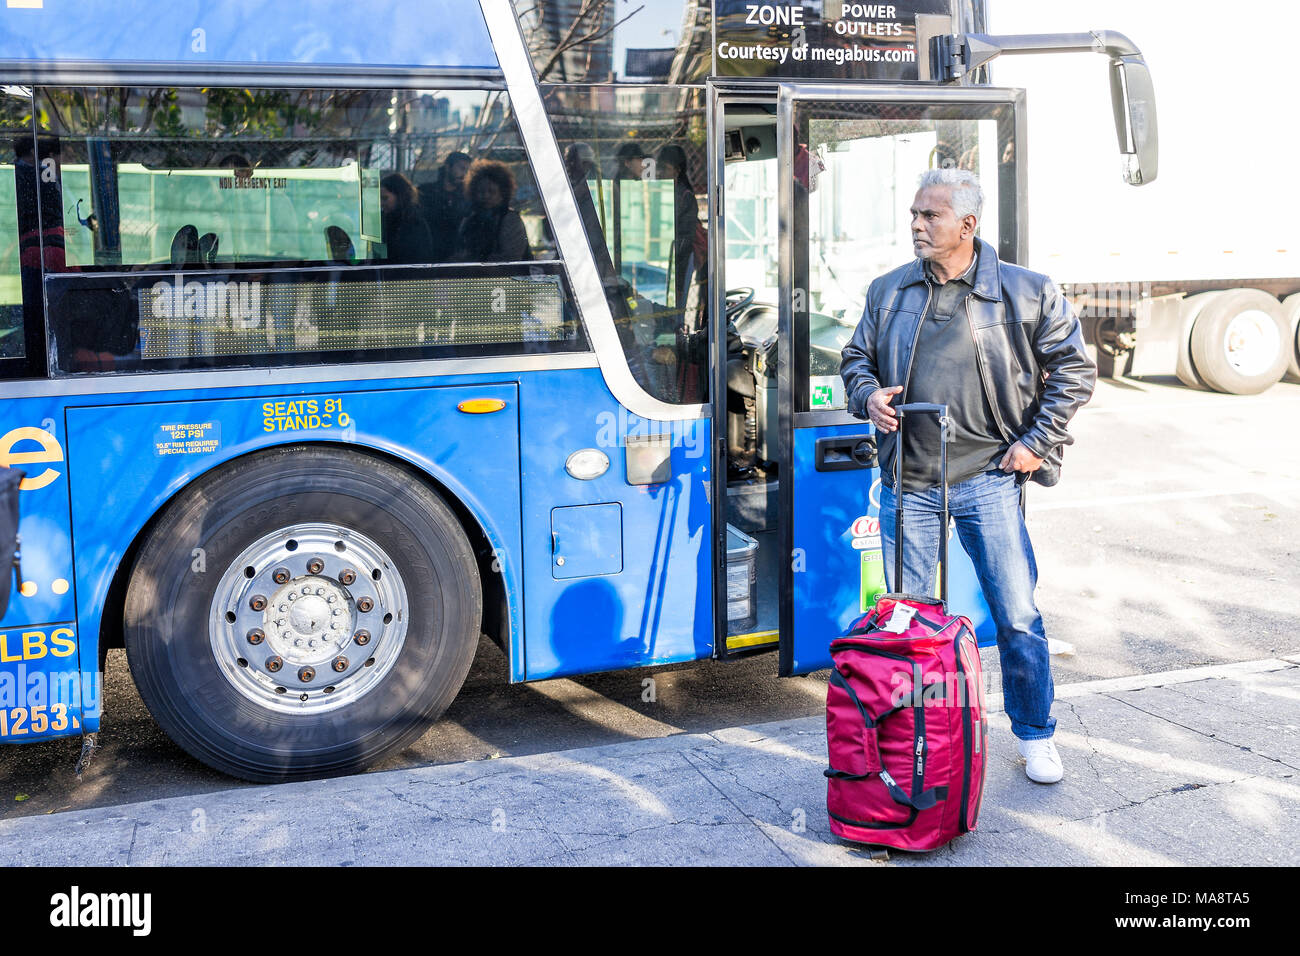 New York City, USA - October 30, 2017: People person one man standing waiting by MegaBus bus sign door in NYC Manhattan Hudson Yards Stock Photo